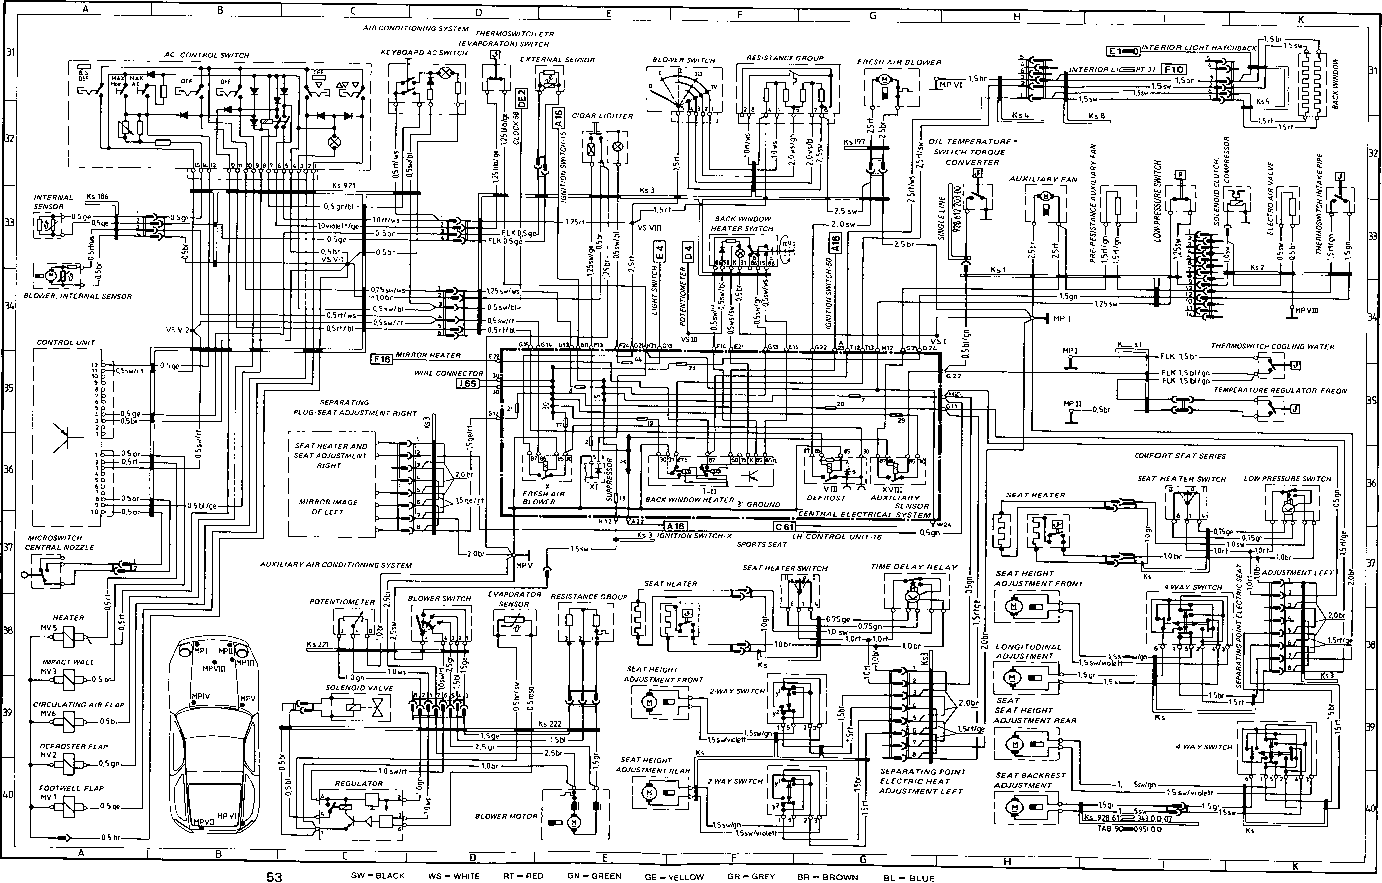 Porsche 993 Turbo Flow Diagram Car Wiring Diagrams Explained 1978 Block And Schematic 1983 928s Wire Center U2022 Rh 107 191 48 154 991